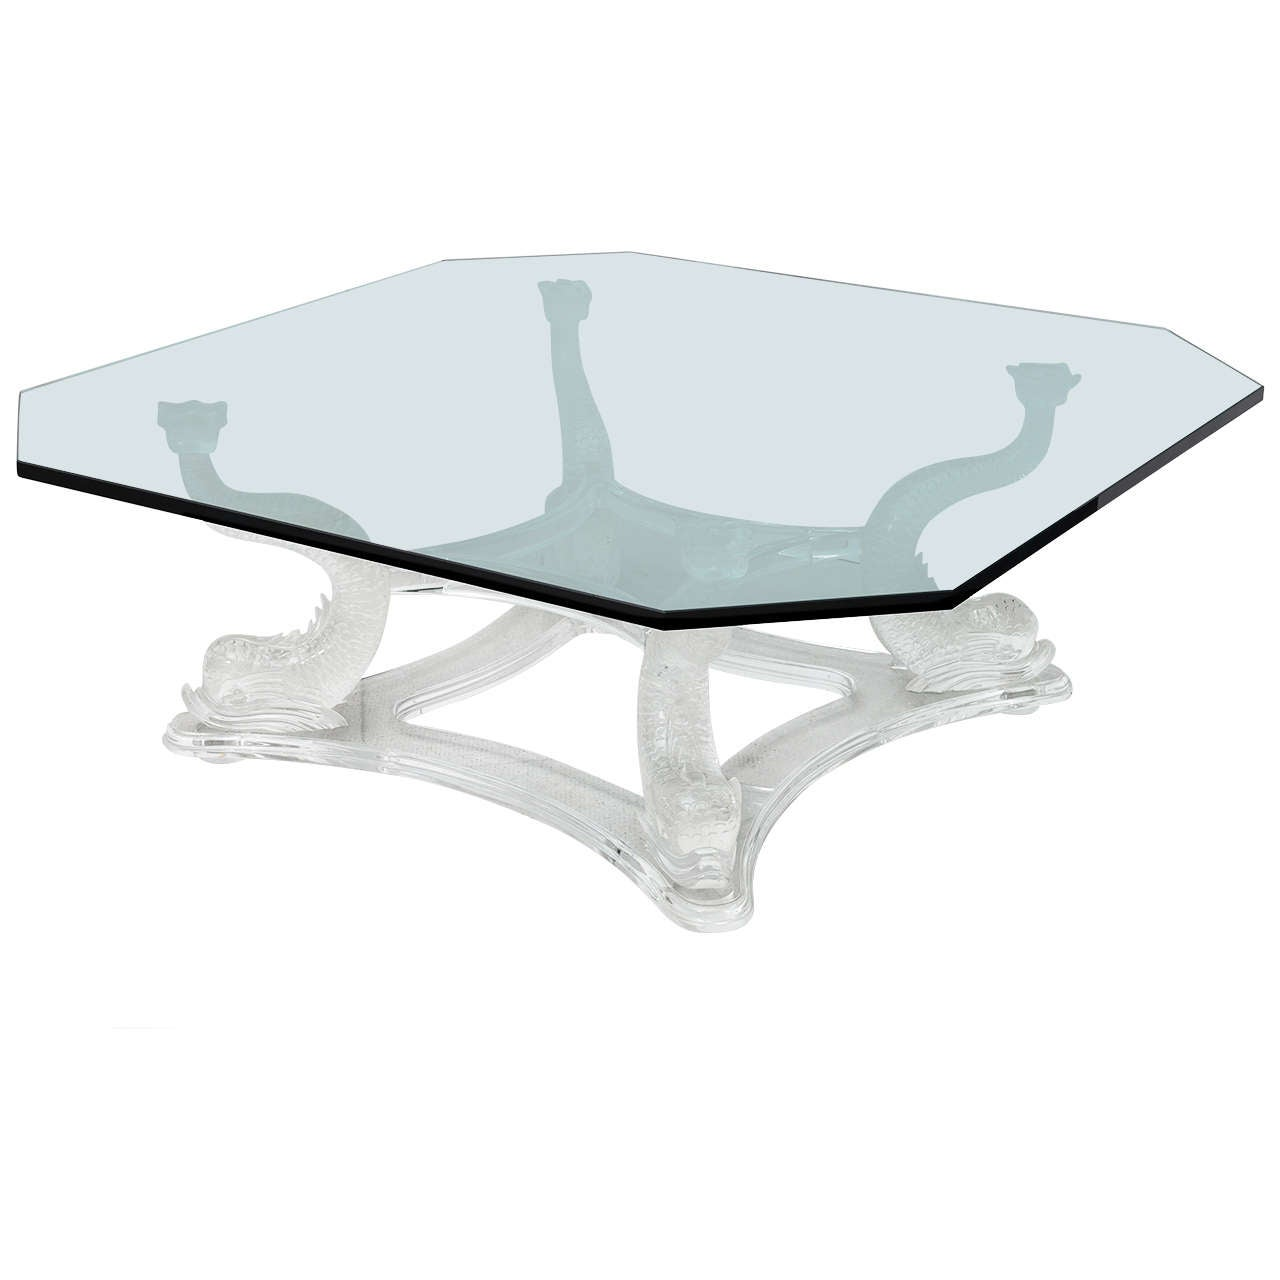 Vintage Lucite Dolphin Table At 1stdibs